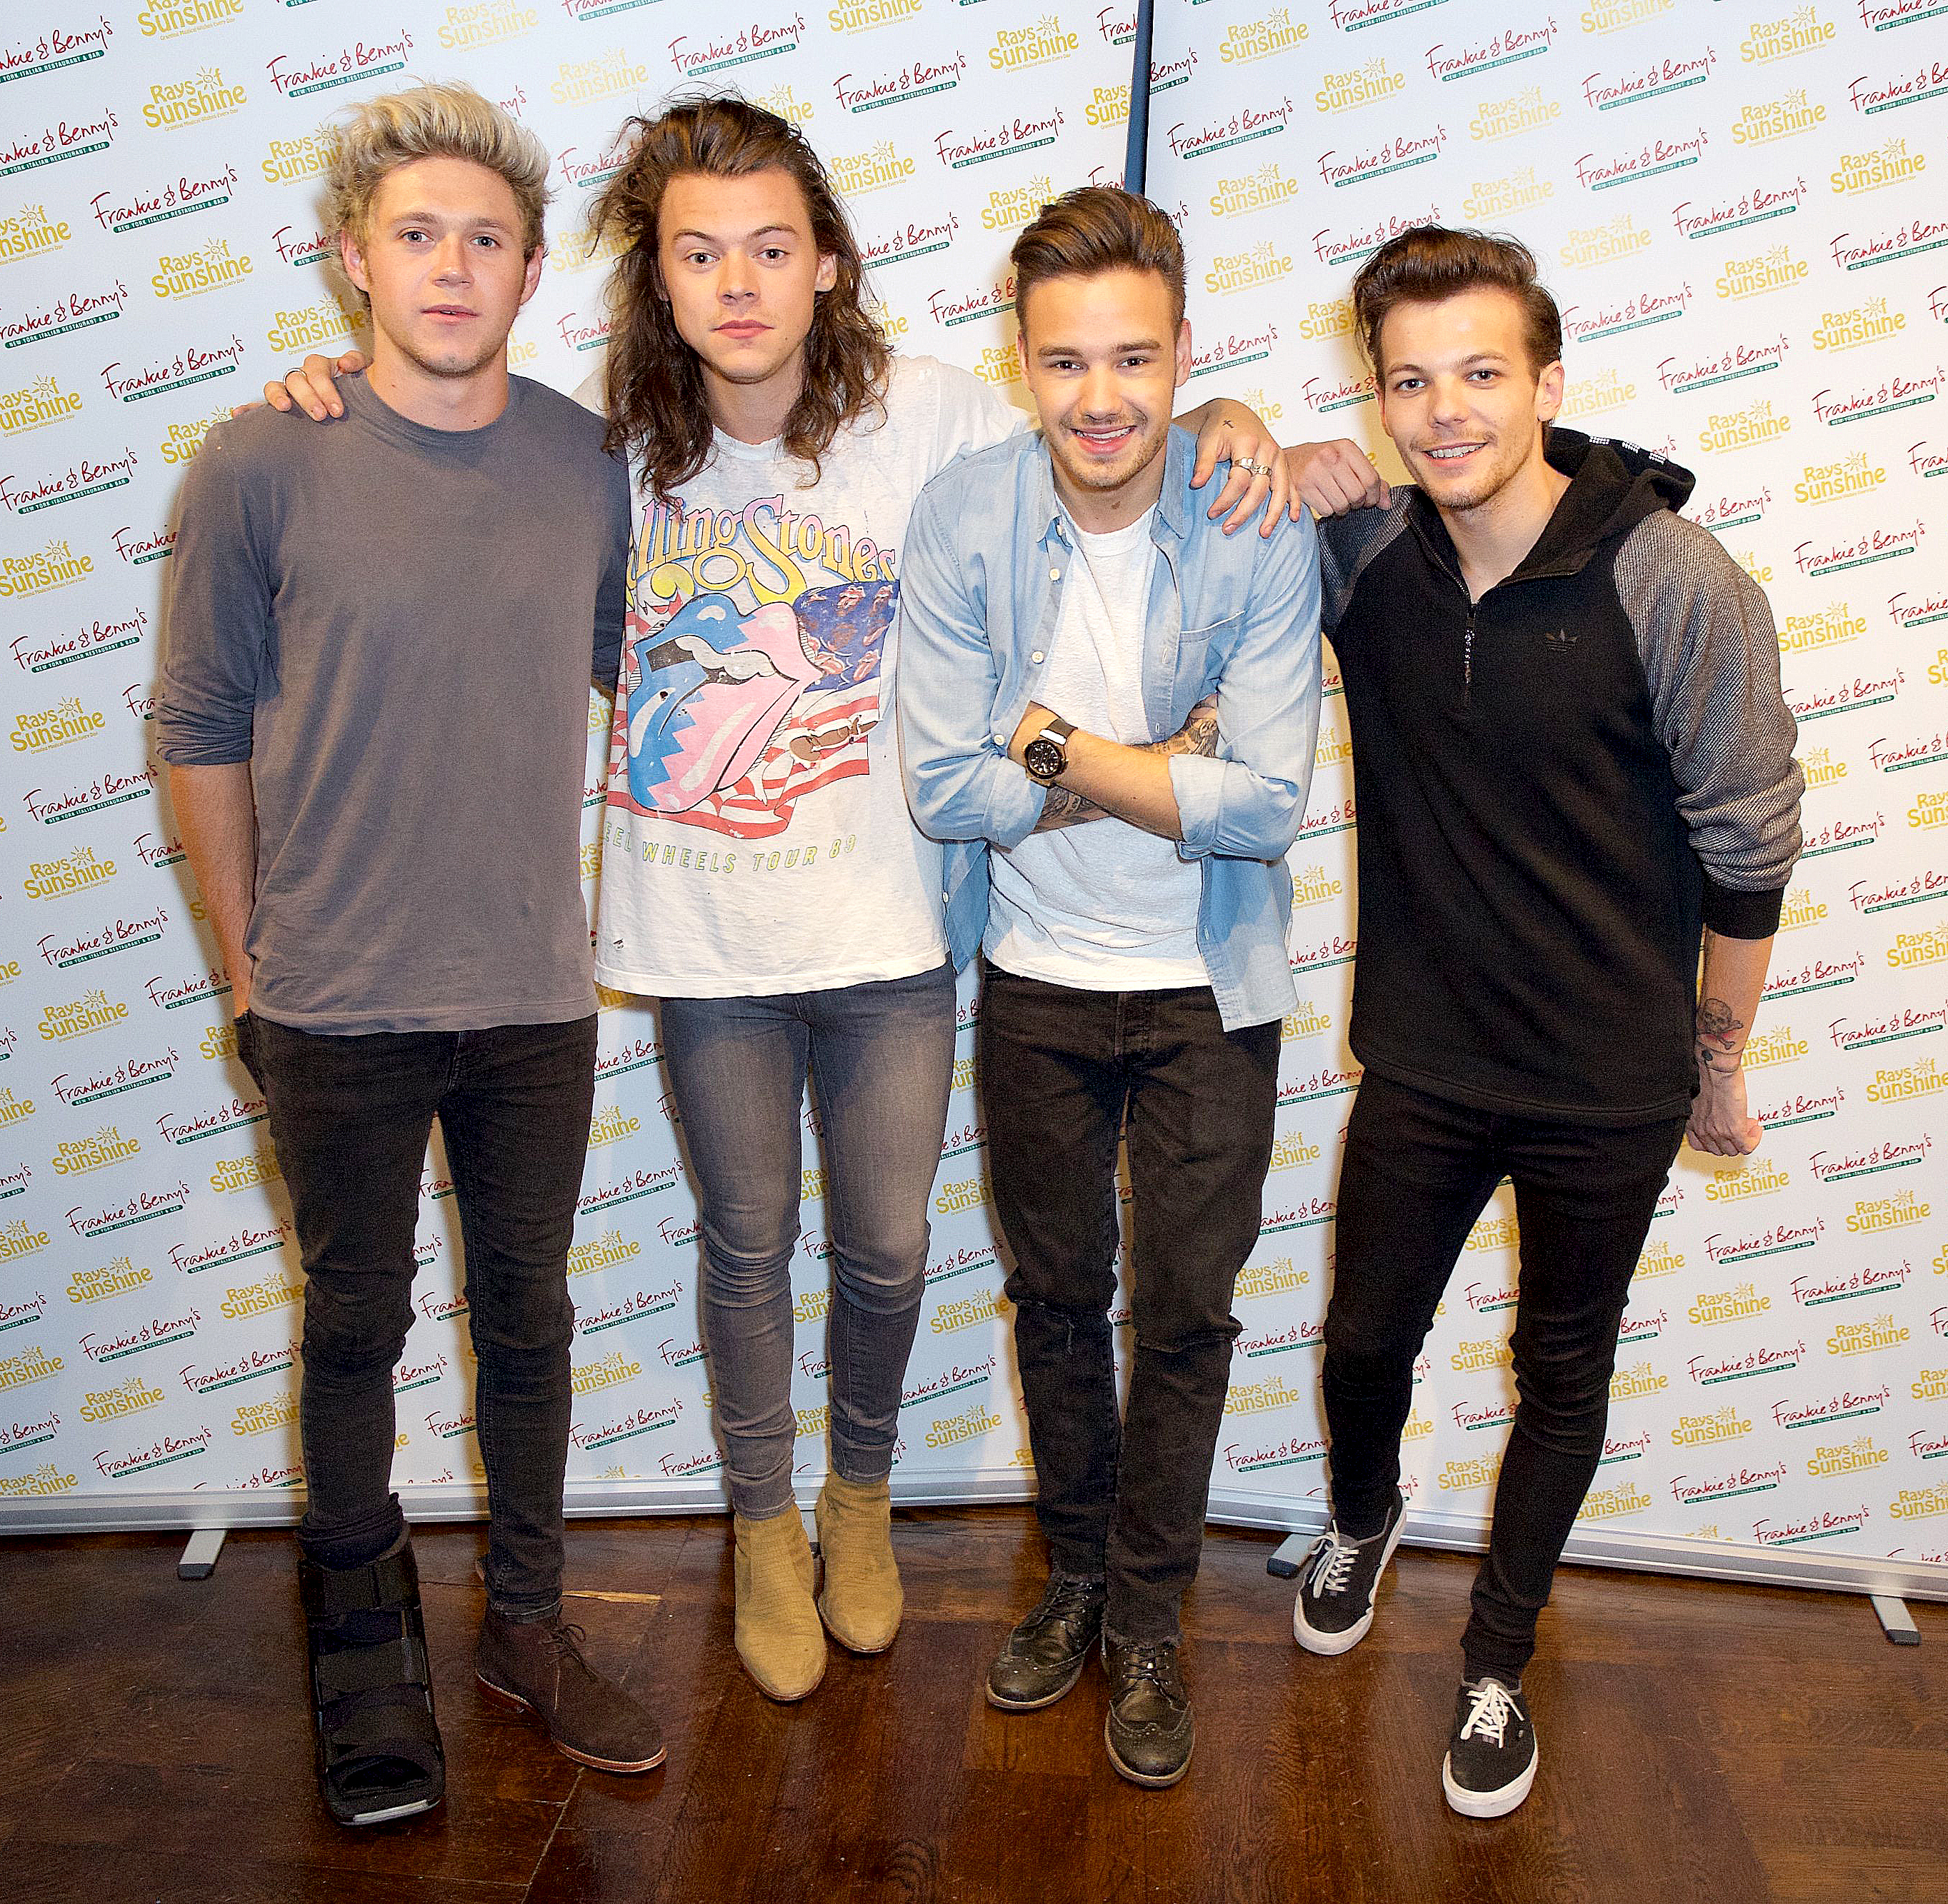 One Direction's New Video Celebrating Their 10th Anniversary Is Major